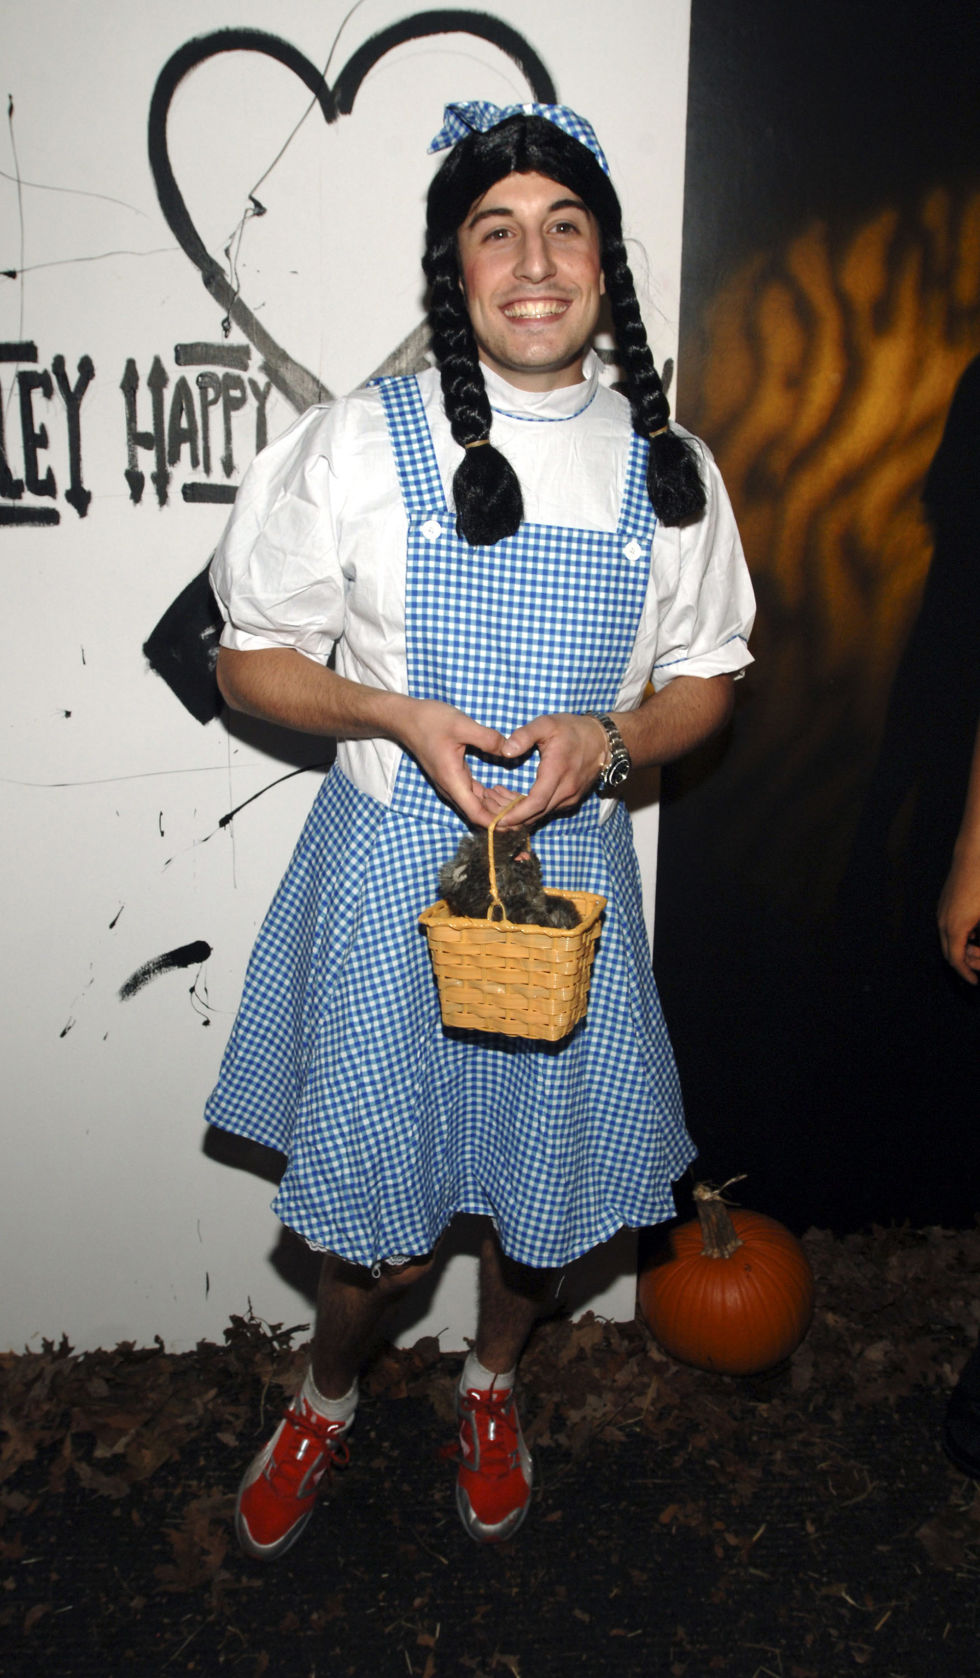 12 worst celebrity halloween costumes - Celeb Halloween Costume